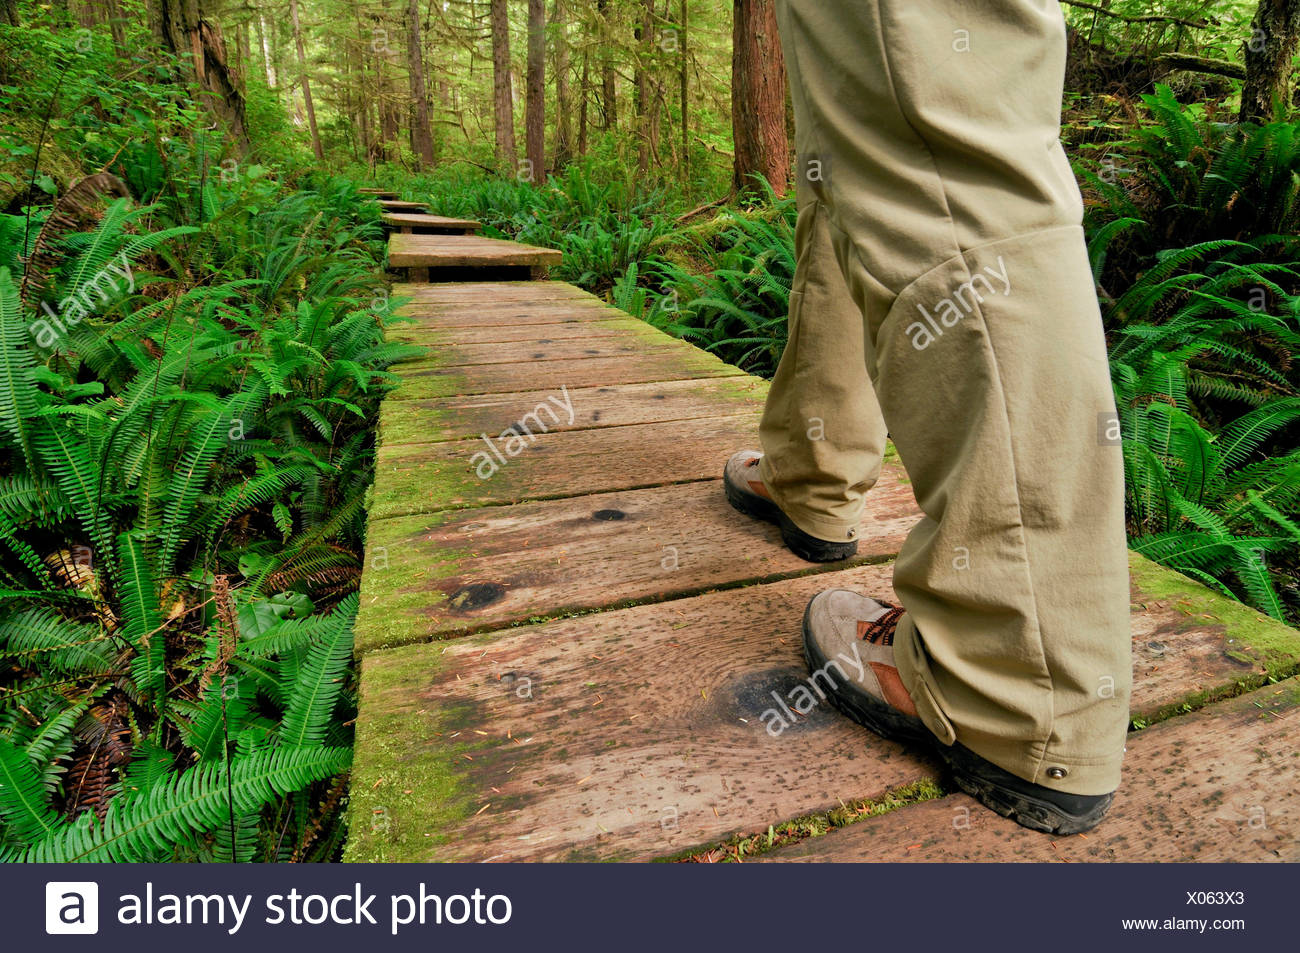 Legs of a hiker on path made of wooden planks, leading through the rainforest to Sand Point, Olympic National Park, Washington - Stock Image